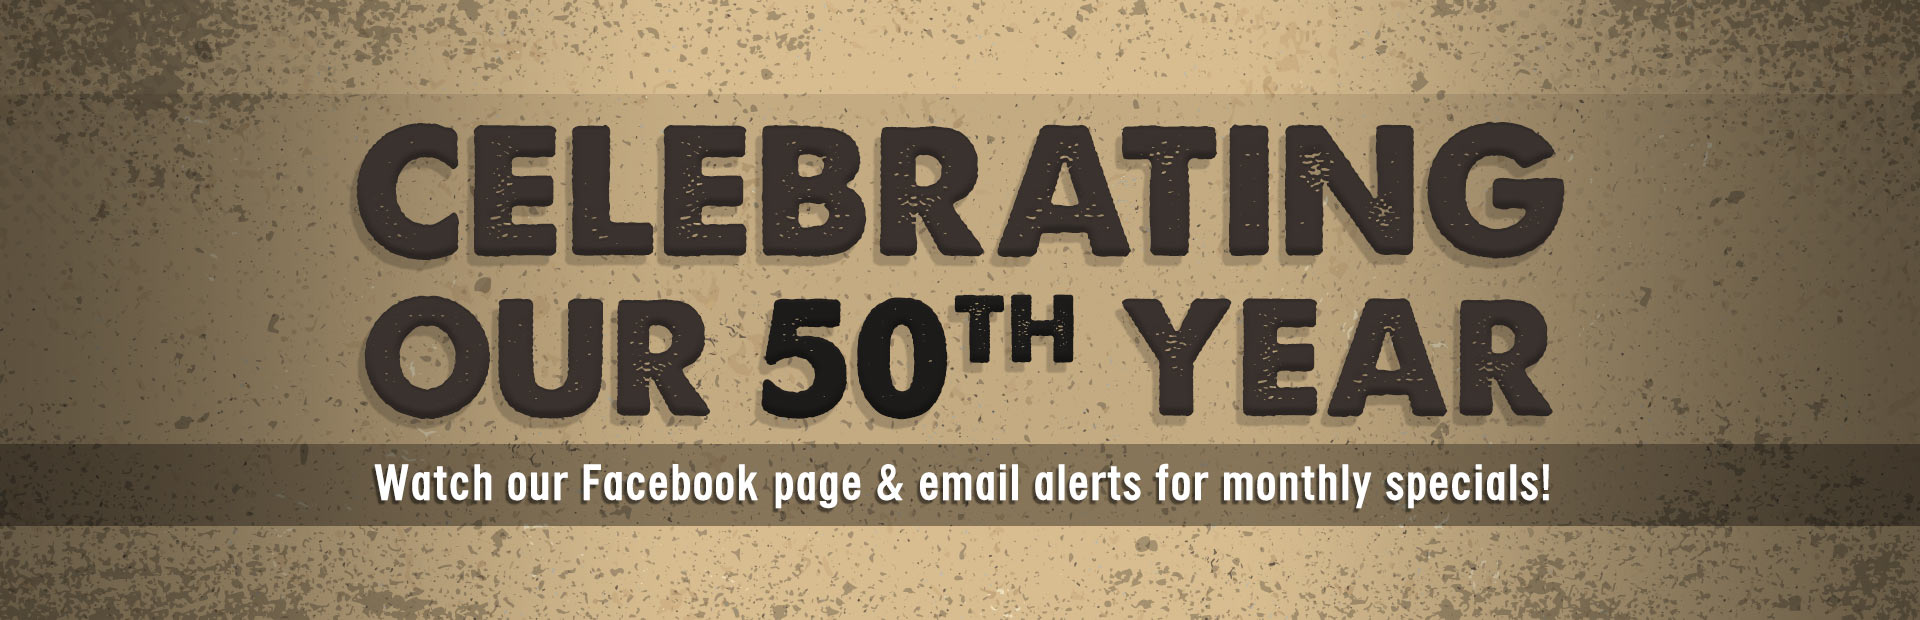 We are celebrating our 50th year! Watch our Facebook page and email alerts for monthly specials!